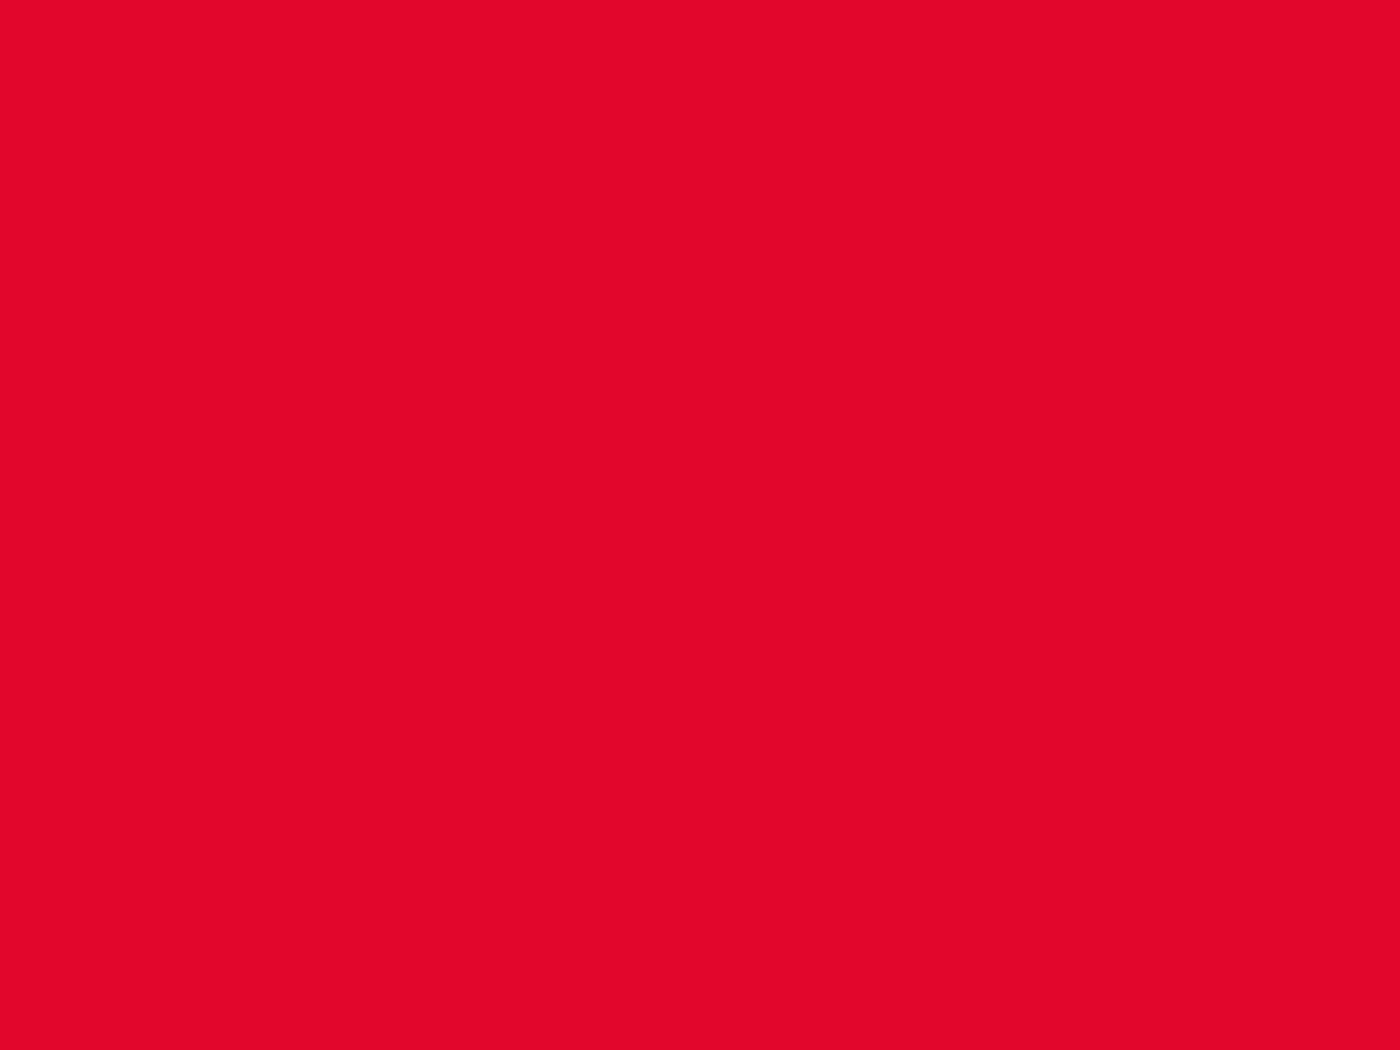 1400x1050 Medium Candy Apple Red Solid Color Background